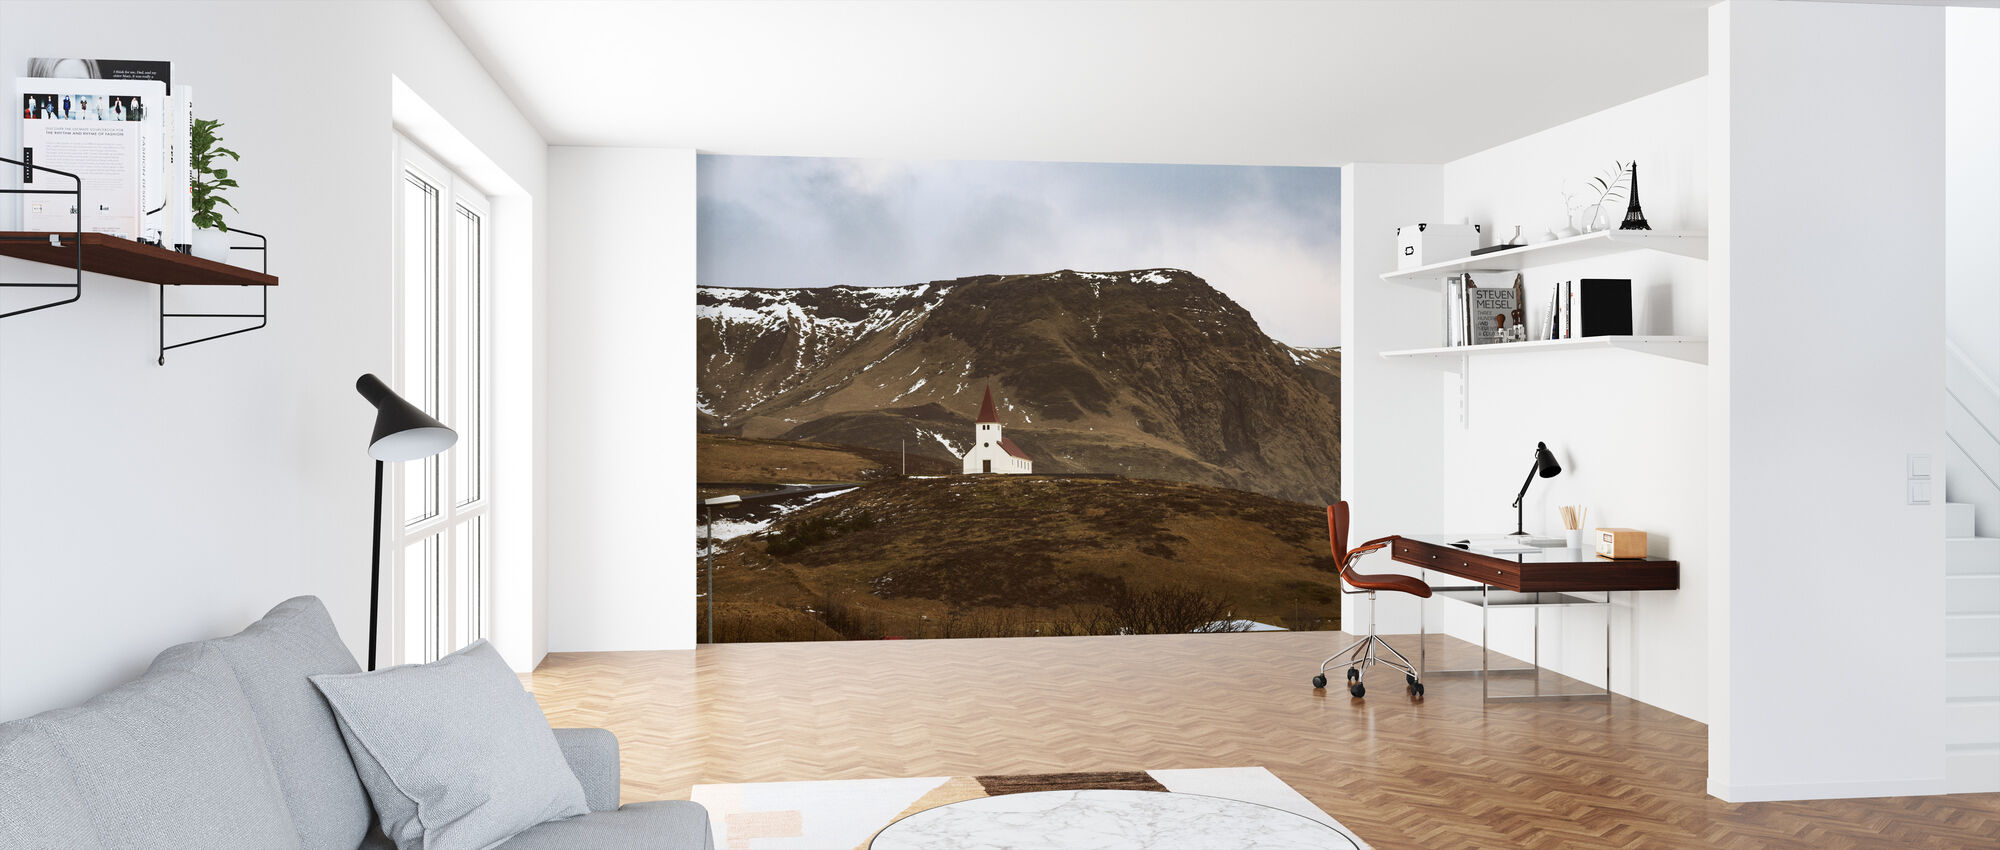 Church in Vik - Iceland - Wallpaper - Office